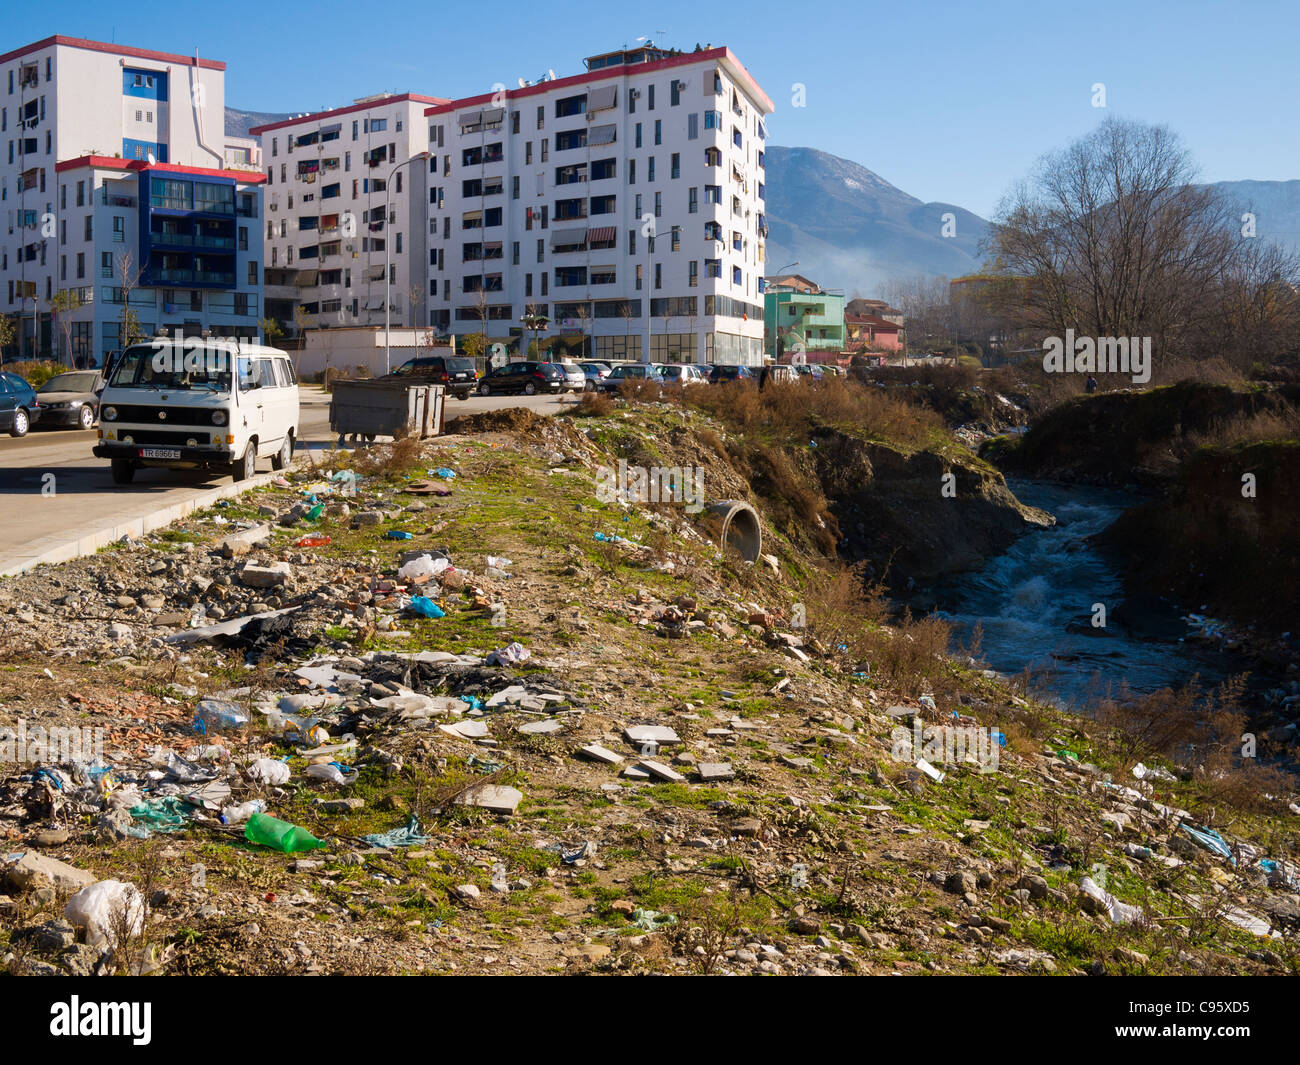 Litter on the banks of the River Lana, Bulevardi Zhan D'Ark, Tirana, Albania.  Modern apartment blocks are nearby. - Stock Image